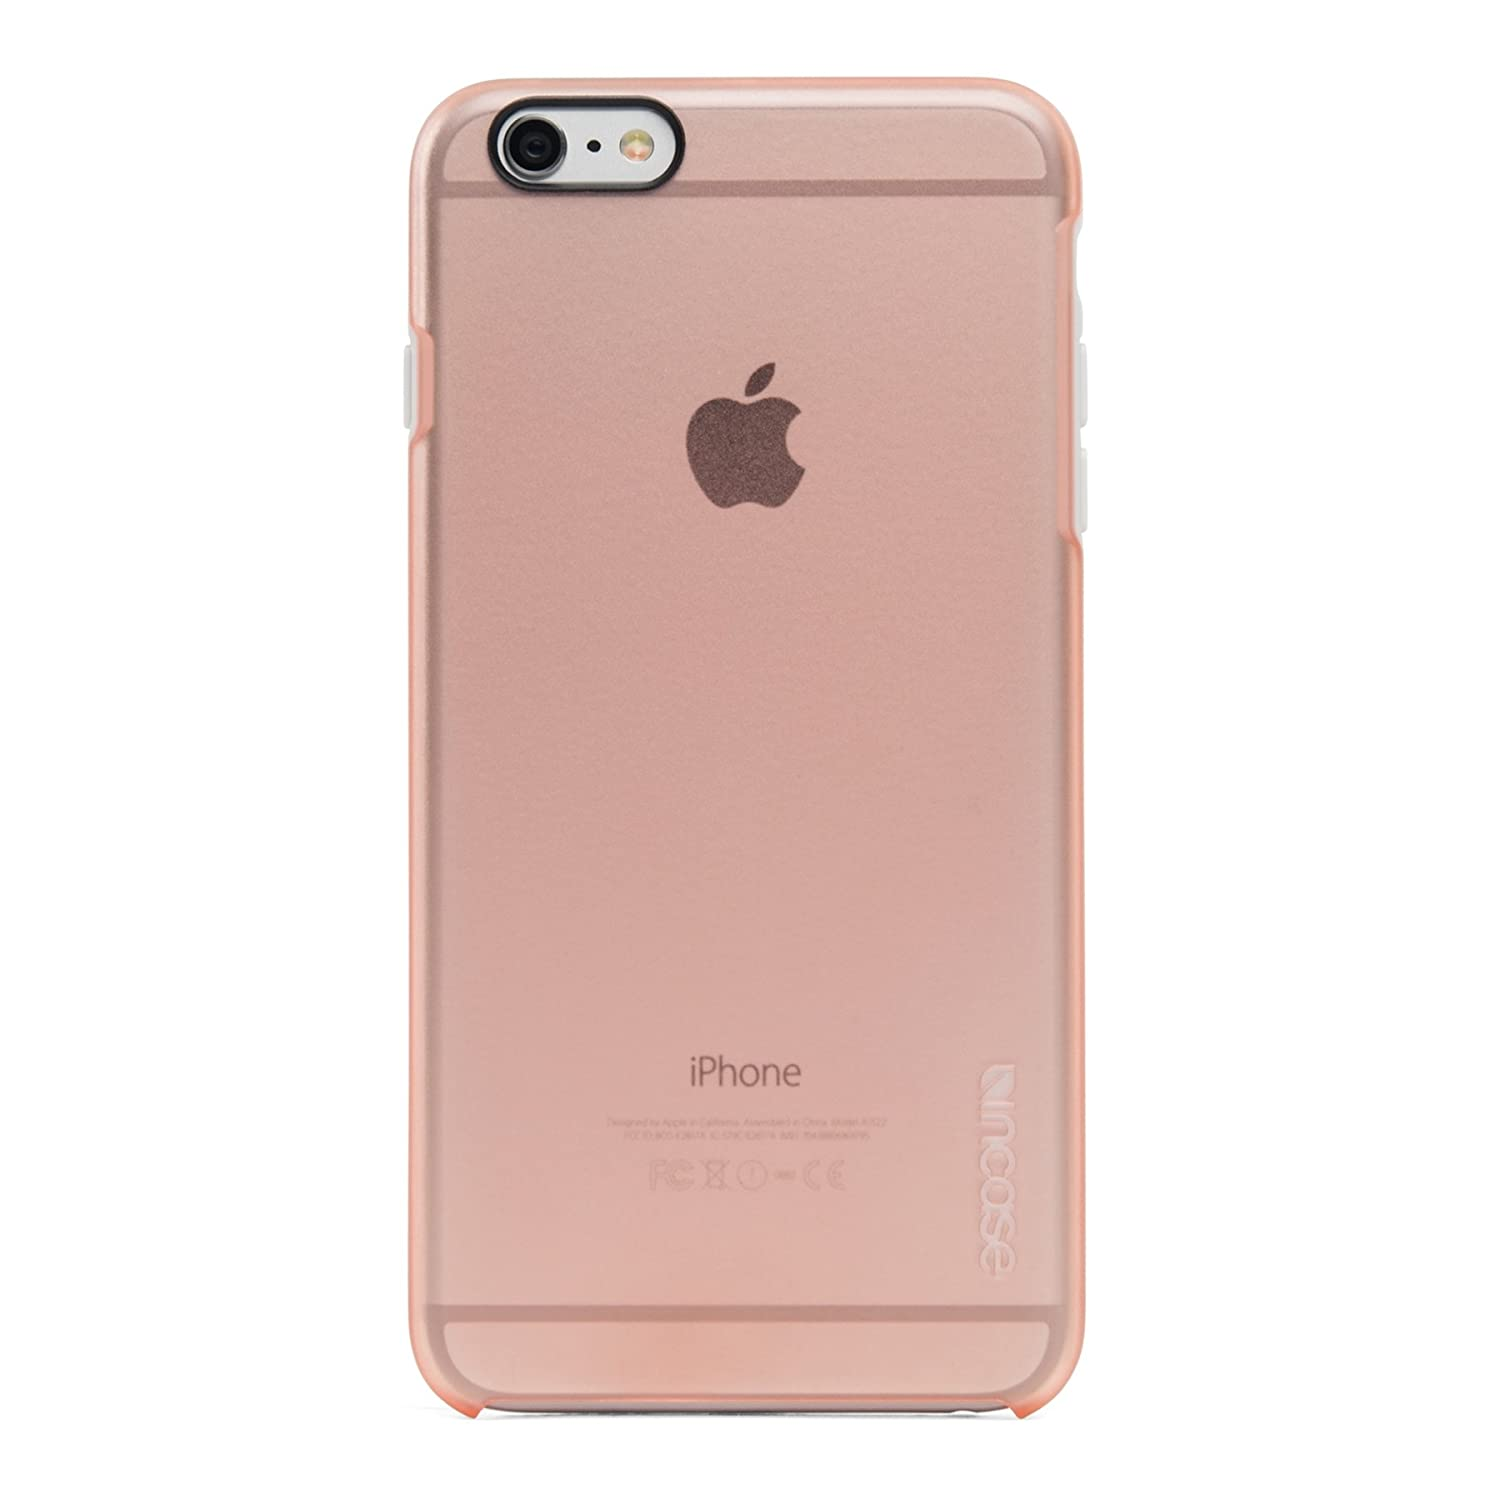 27875a95df1 Amazon.com: Incase Halo Shell Case for iPhone 6s/6 (Rose Quartz - INPH14067- RSQ): Cell Phones & Accessories